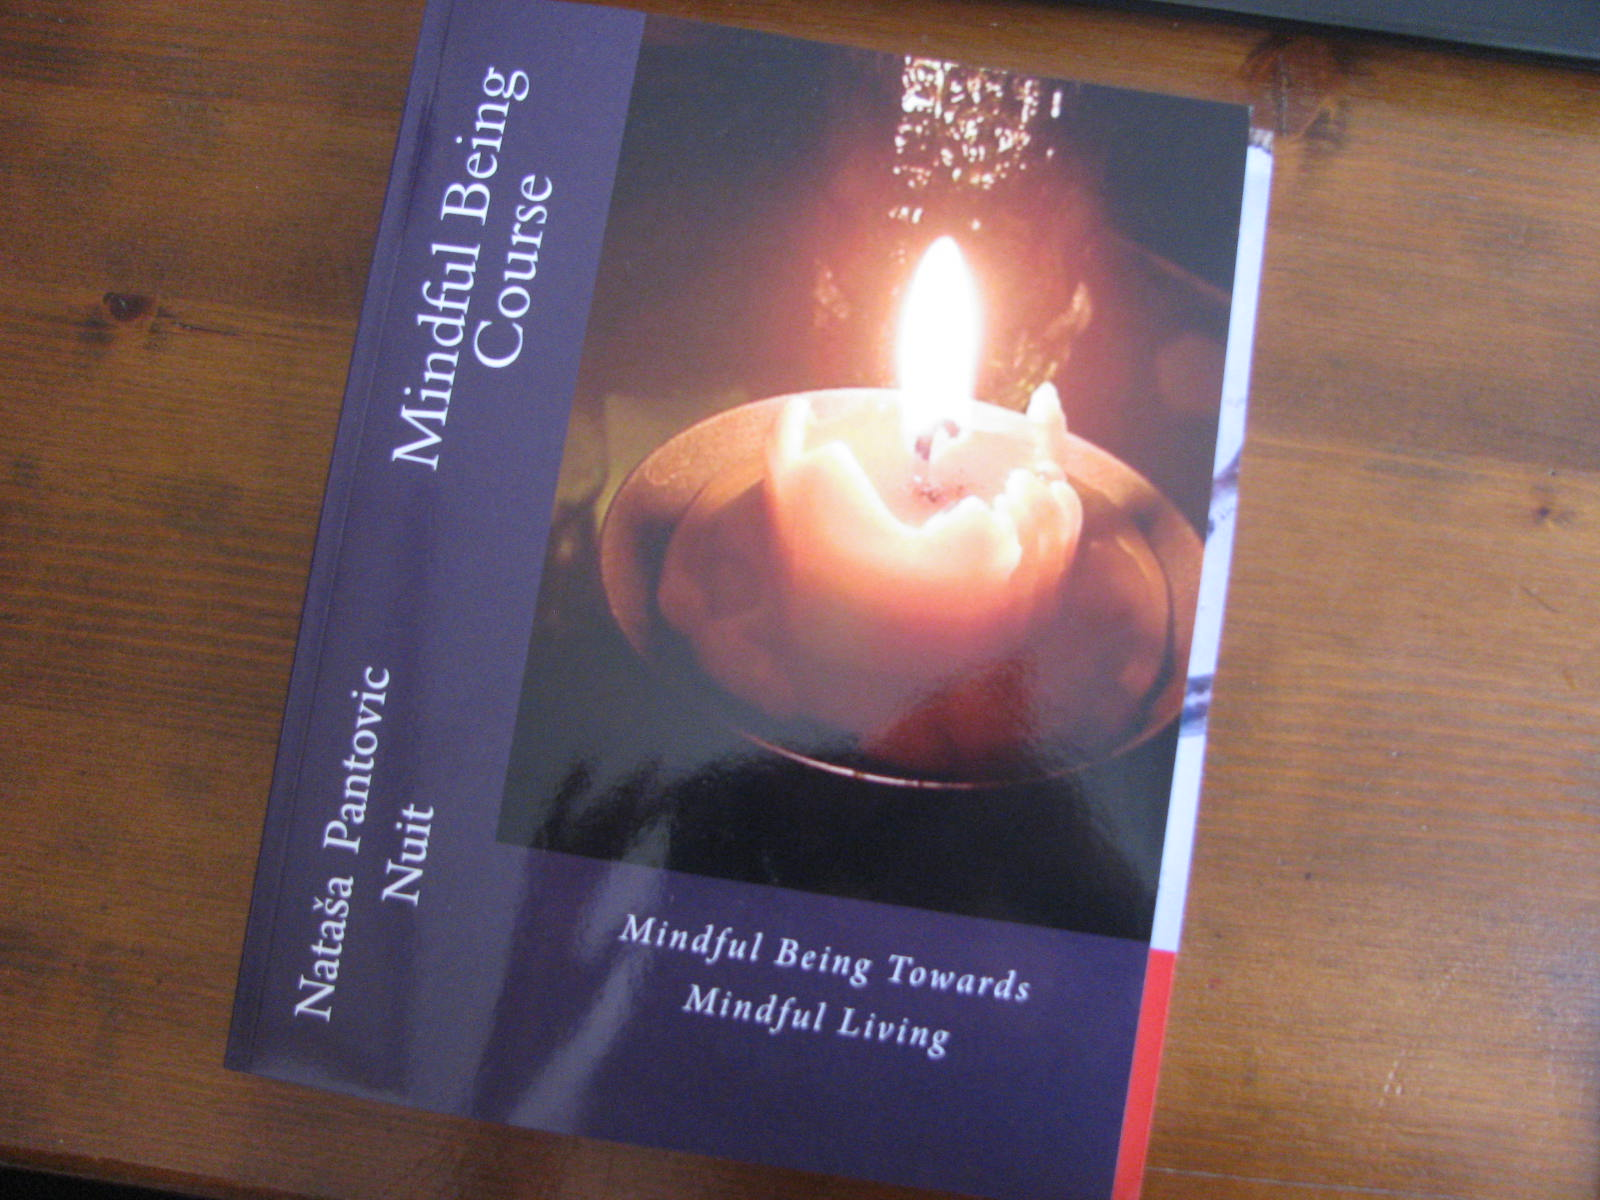 Alchemy of love mindfulness training book: Mindful Being